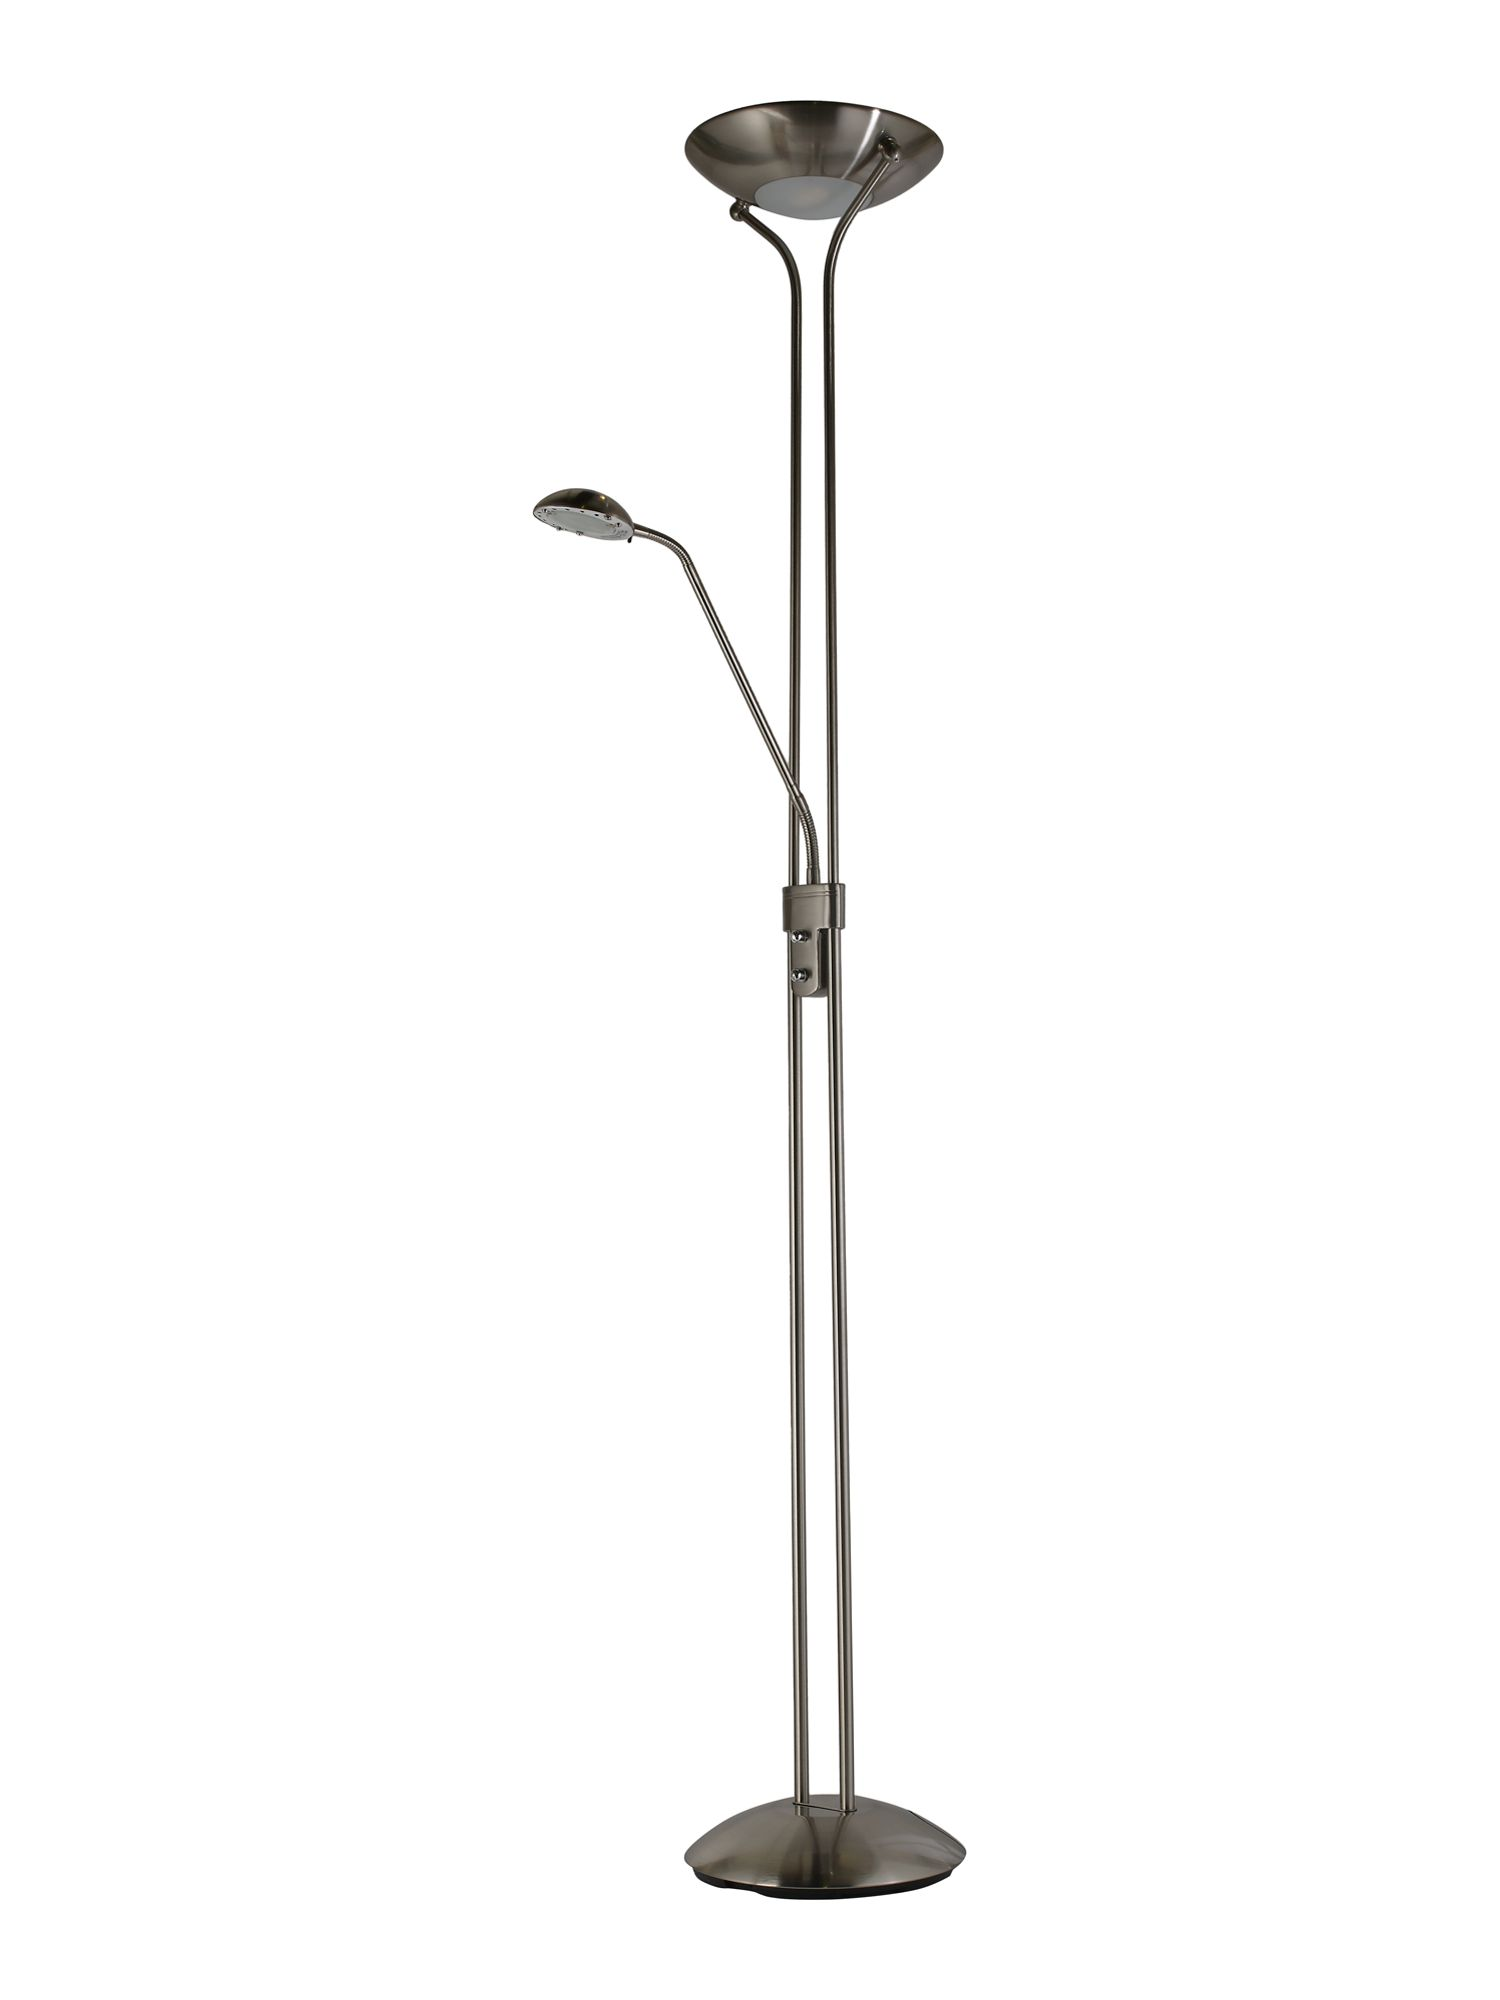 Buy cheap halogen dimmer switch compare lighting prices for Cheap uplighter floor lamp